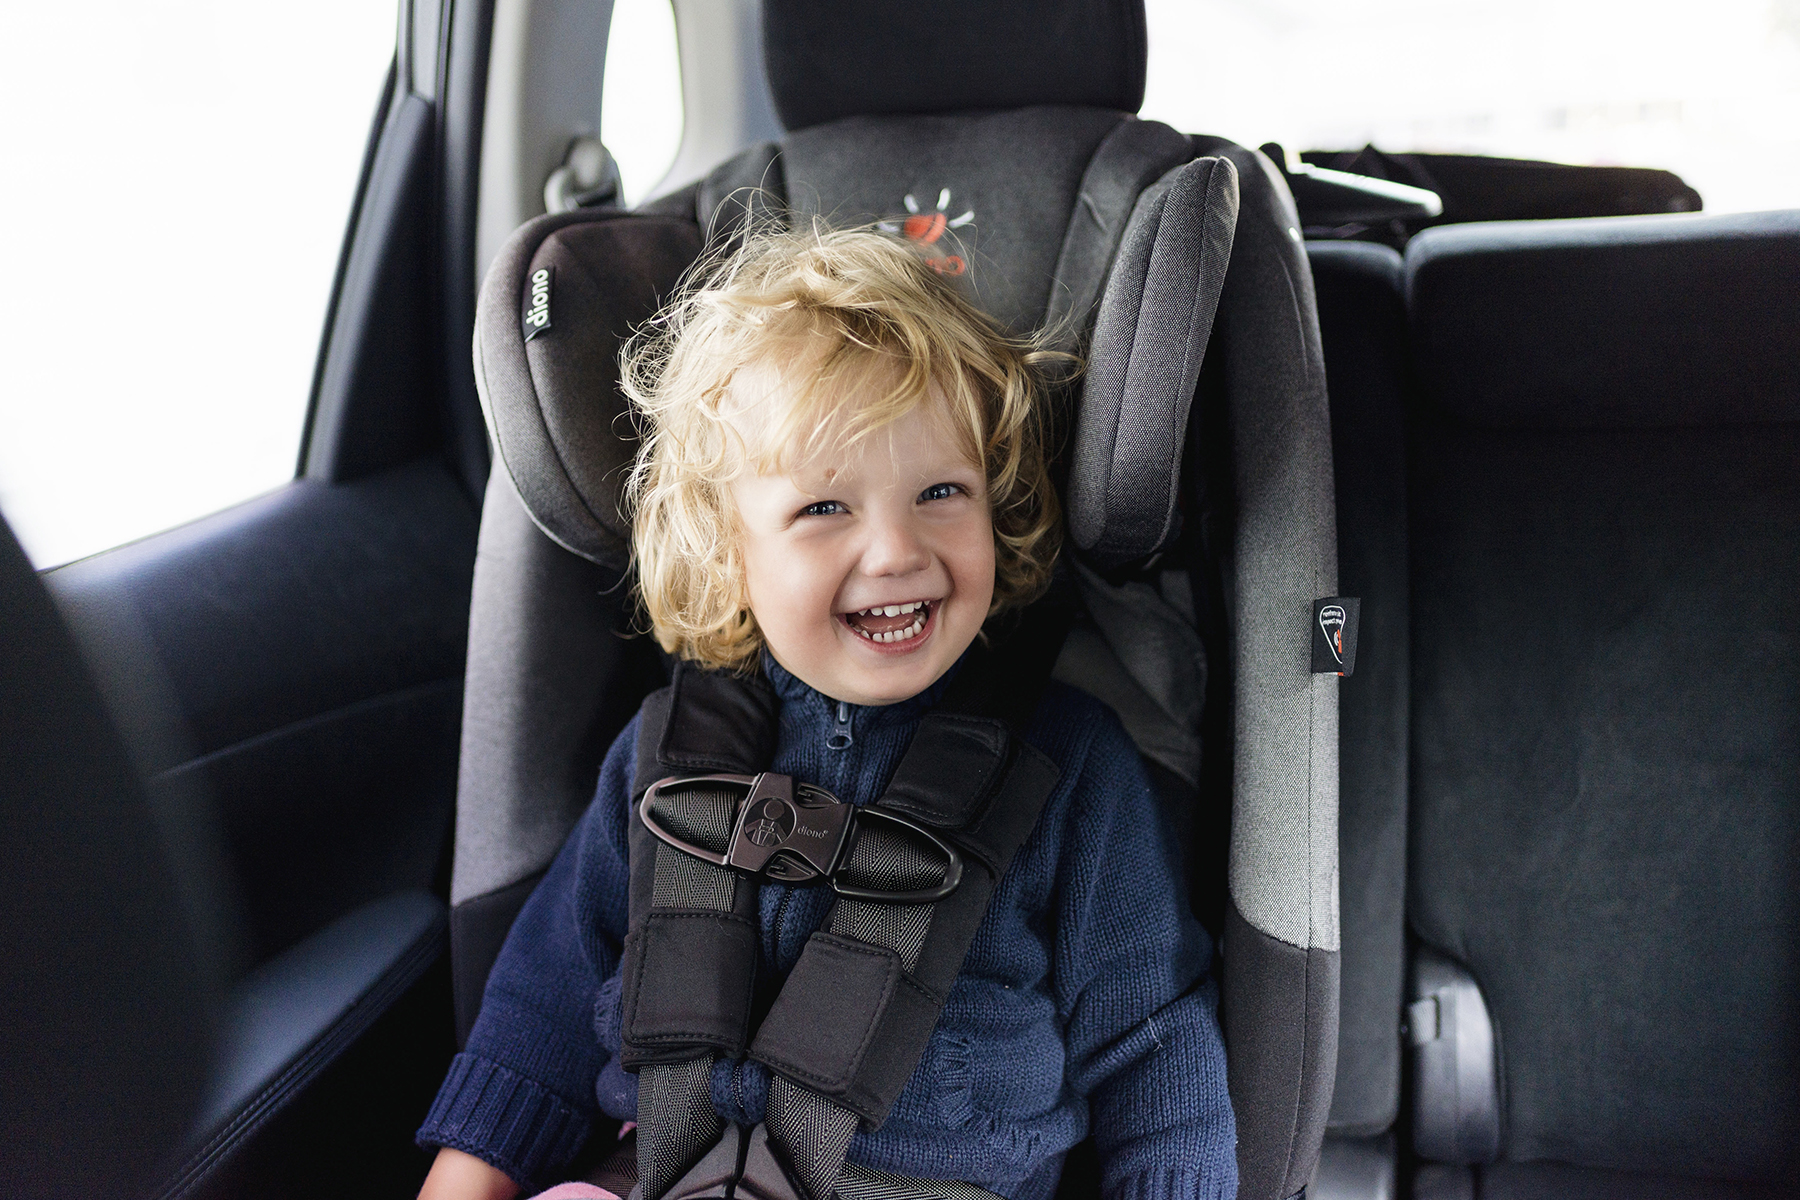 Diono Radian forward facing install | Top 10 tips for road tripping with toddlers + preschoolers